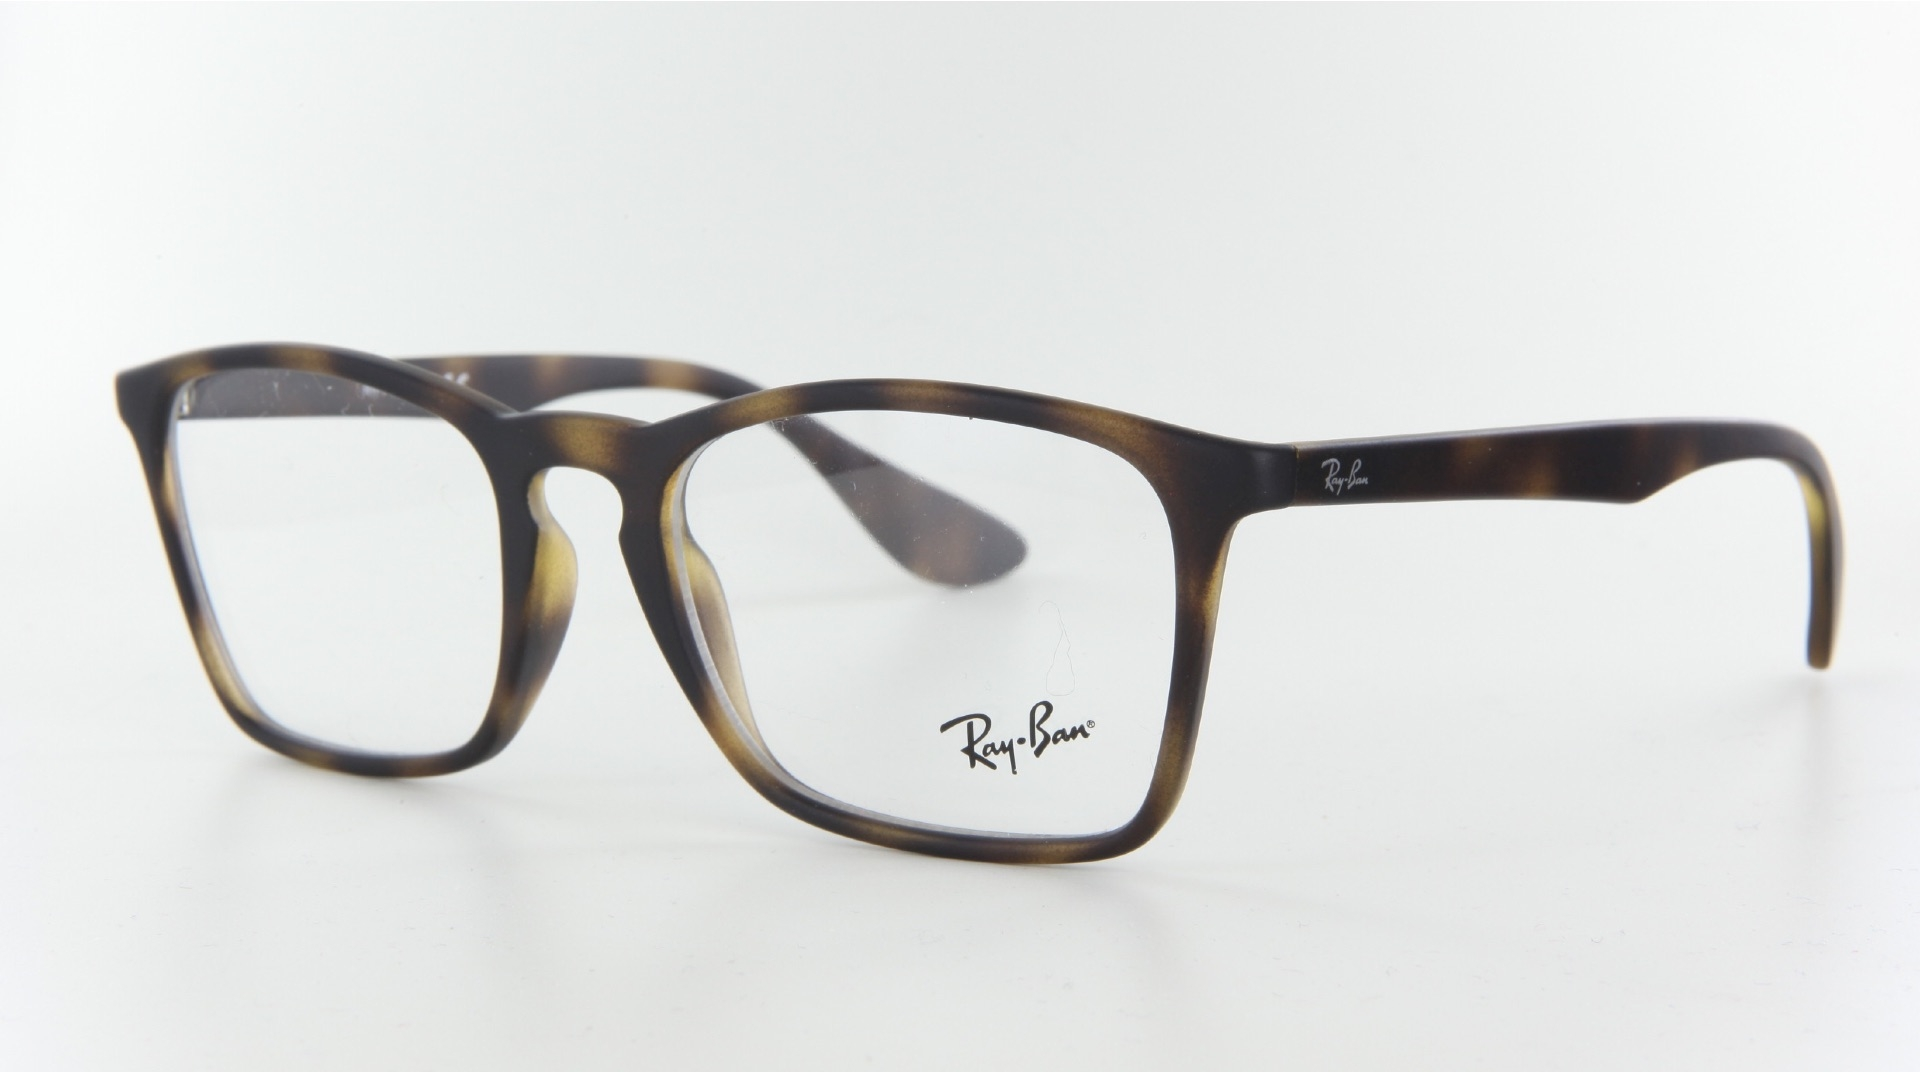 Ray-Ban - ref: 72934